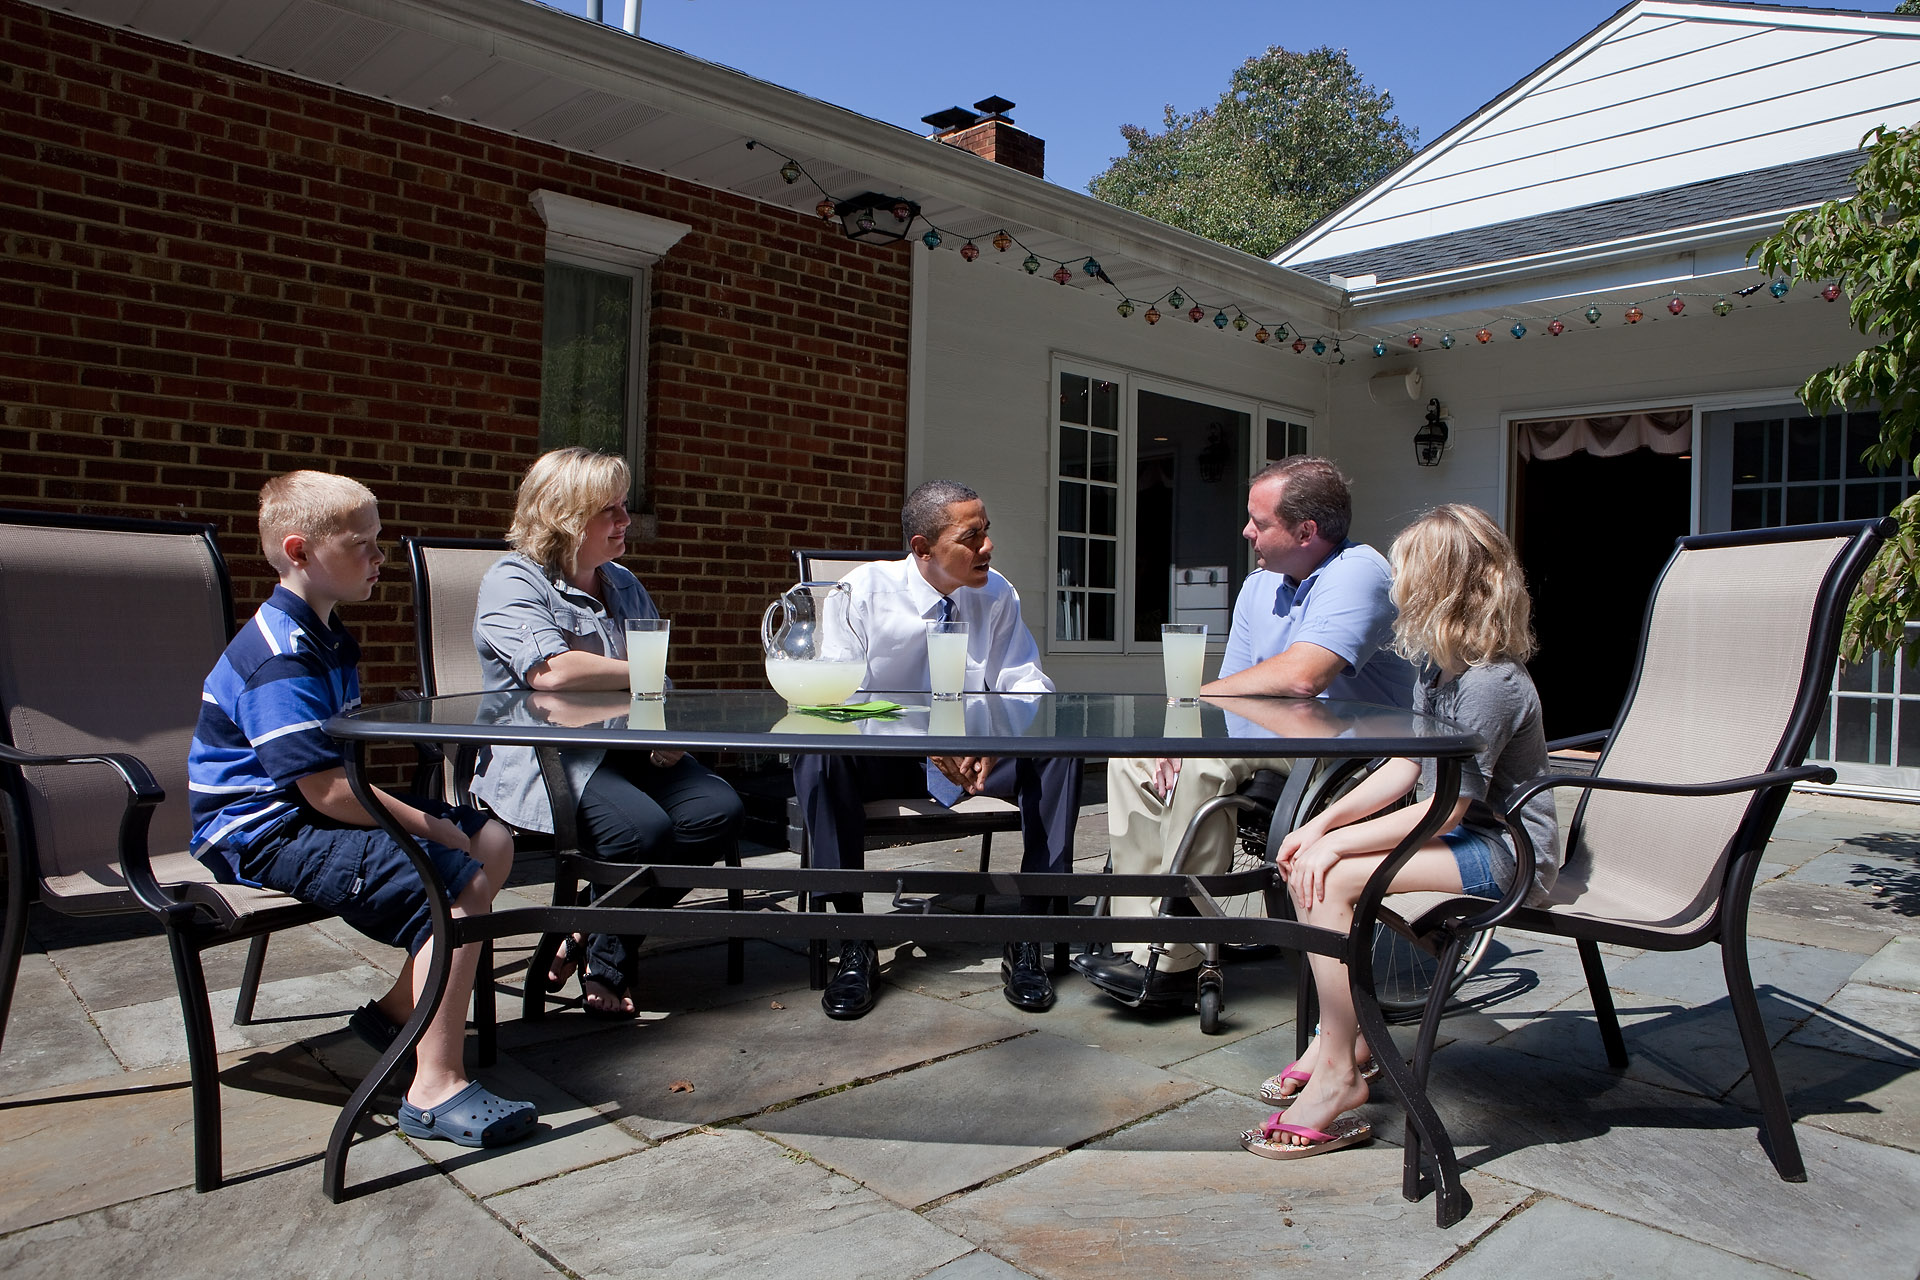 President Barack Obama talks with John Nicholas, Nicole Armstrong, and Their Twins Trevor and Olivia, on the Patio of Their home in Fairfax, Virginia